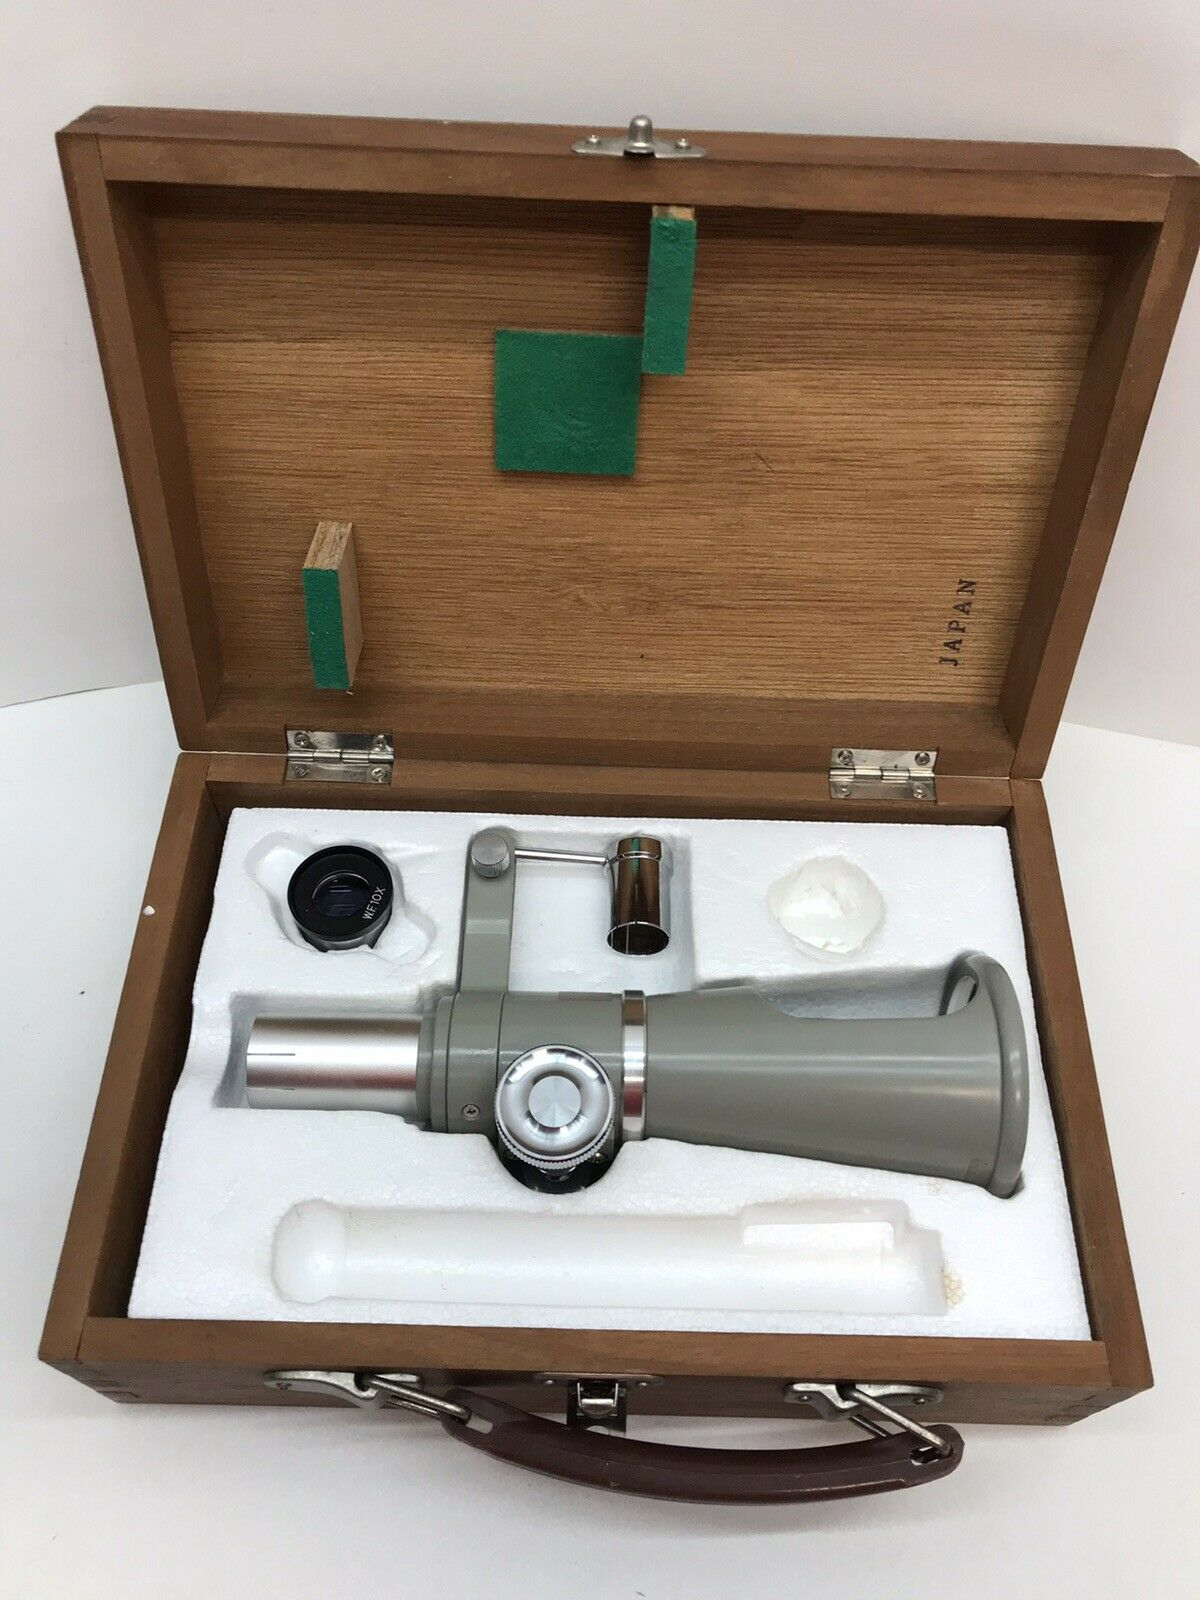 Cole-Parmer Replacement Penlight for Shop Microscopes